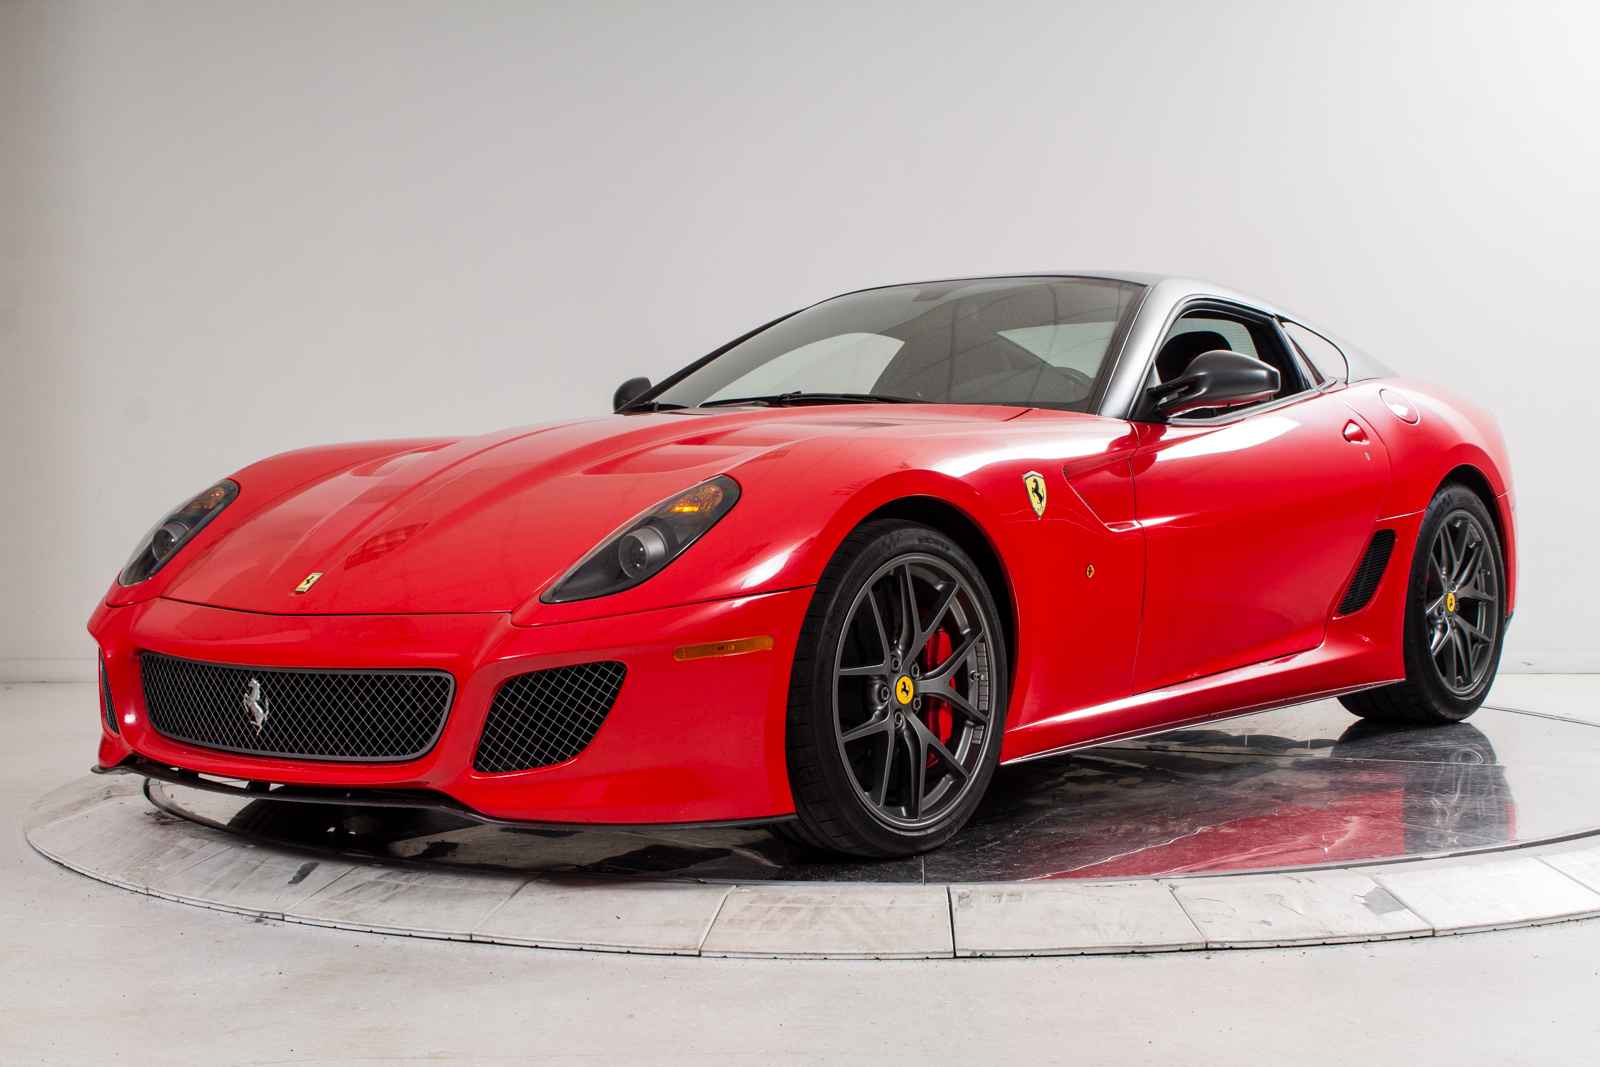 Glamorous Ferrari 599 GTO For Sale in the U.S - GTspirit